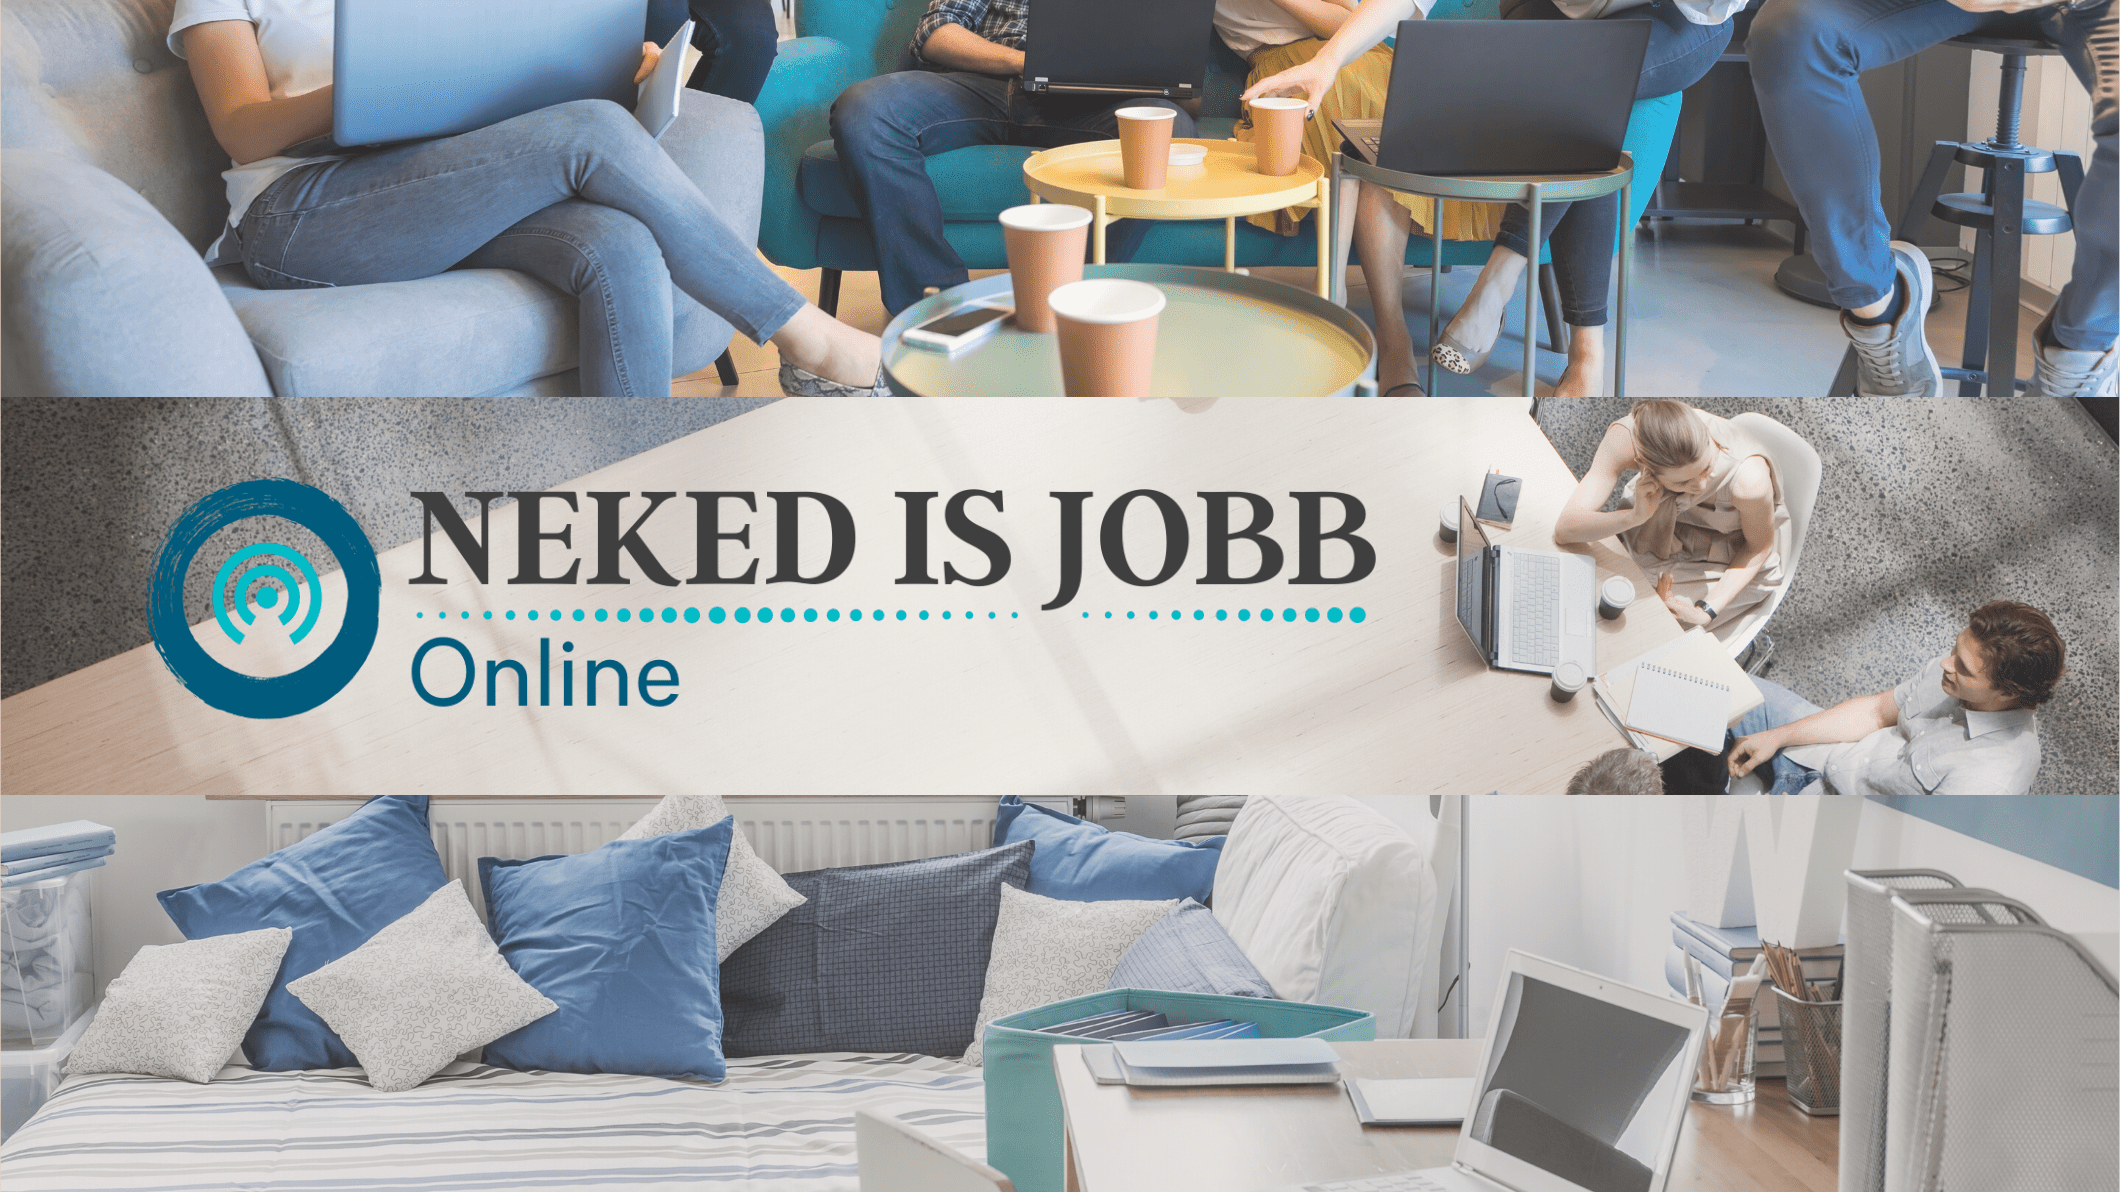 Neked is jobb online - Start